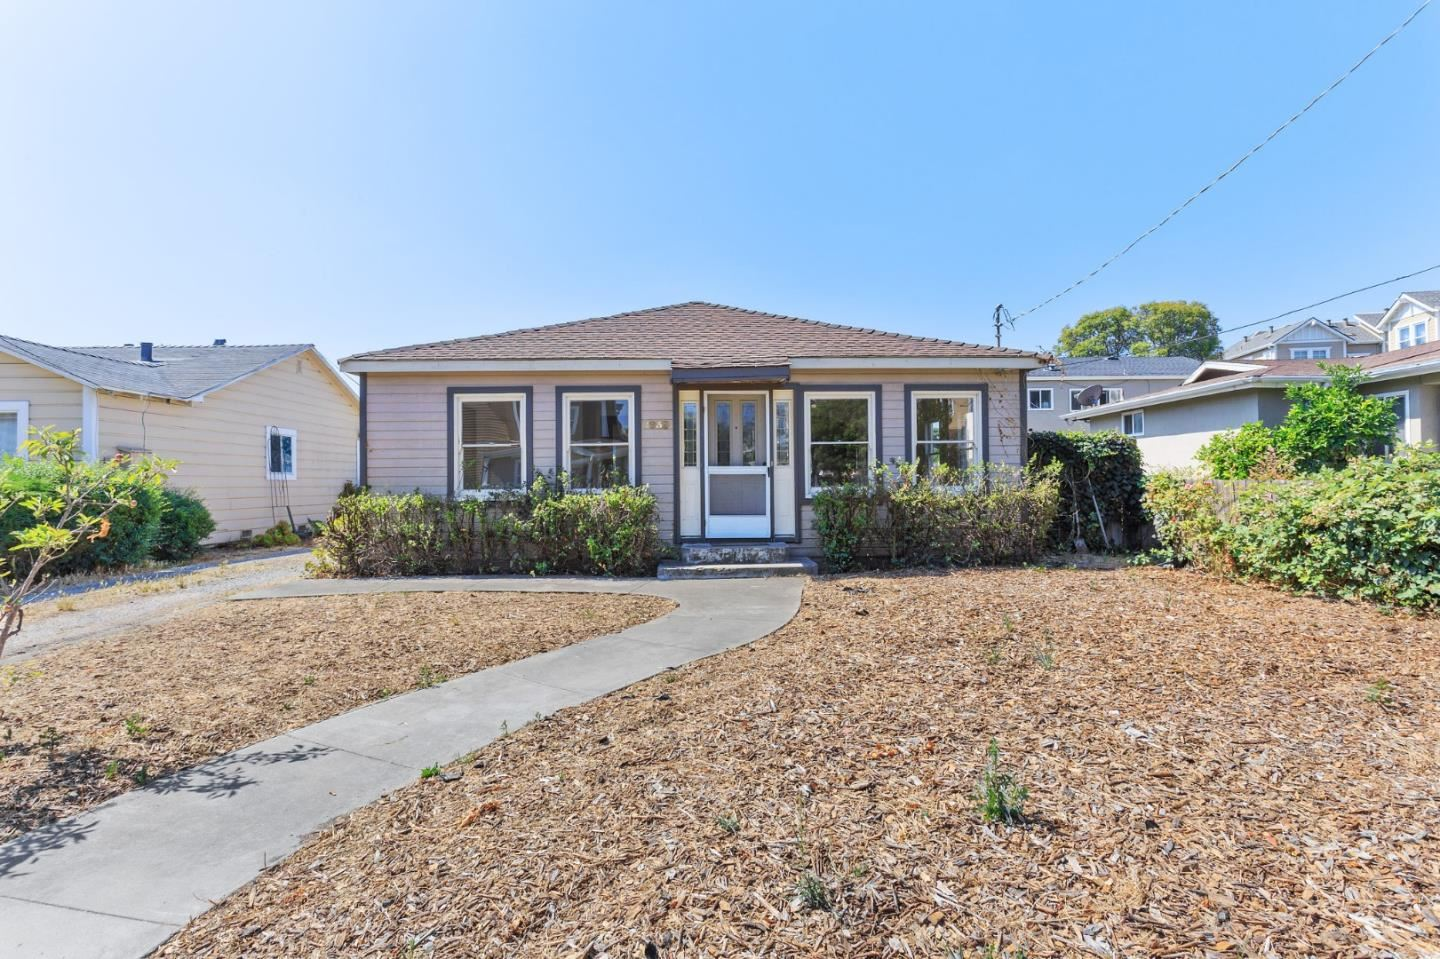 Photo for 1939 Colony ST, MOUNTAIN VIEW, CA 94043 (MLS # ML81798935)